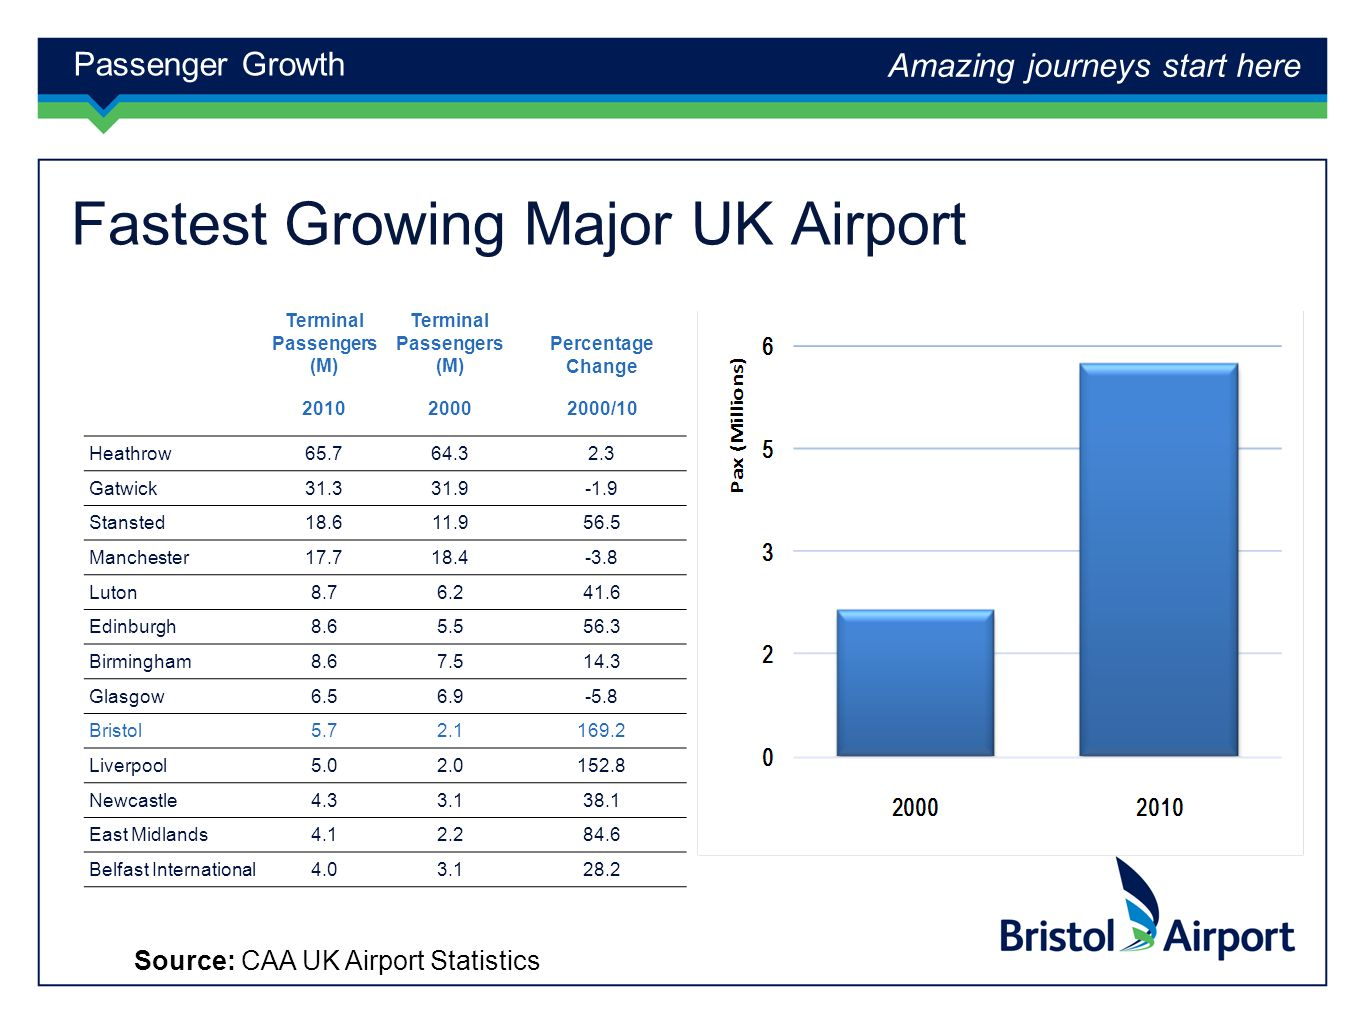 Amazing journeys start here Fastest Growing Major UK Airport Heathrow Gatwick Stansted Manchester Luton Edinburgh Birmingham Glasgow Bristol Liverpool Newcastle East Midlands Belfast International Terminal Passengers (M) Percentage Change /10 Passenger Growth Source: CAA UK Airport Statistics